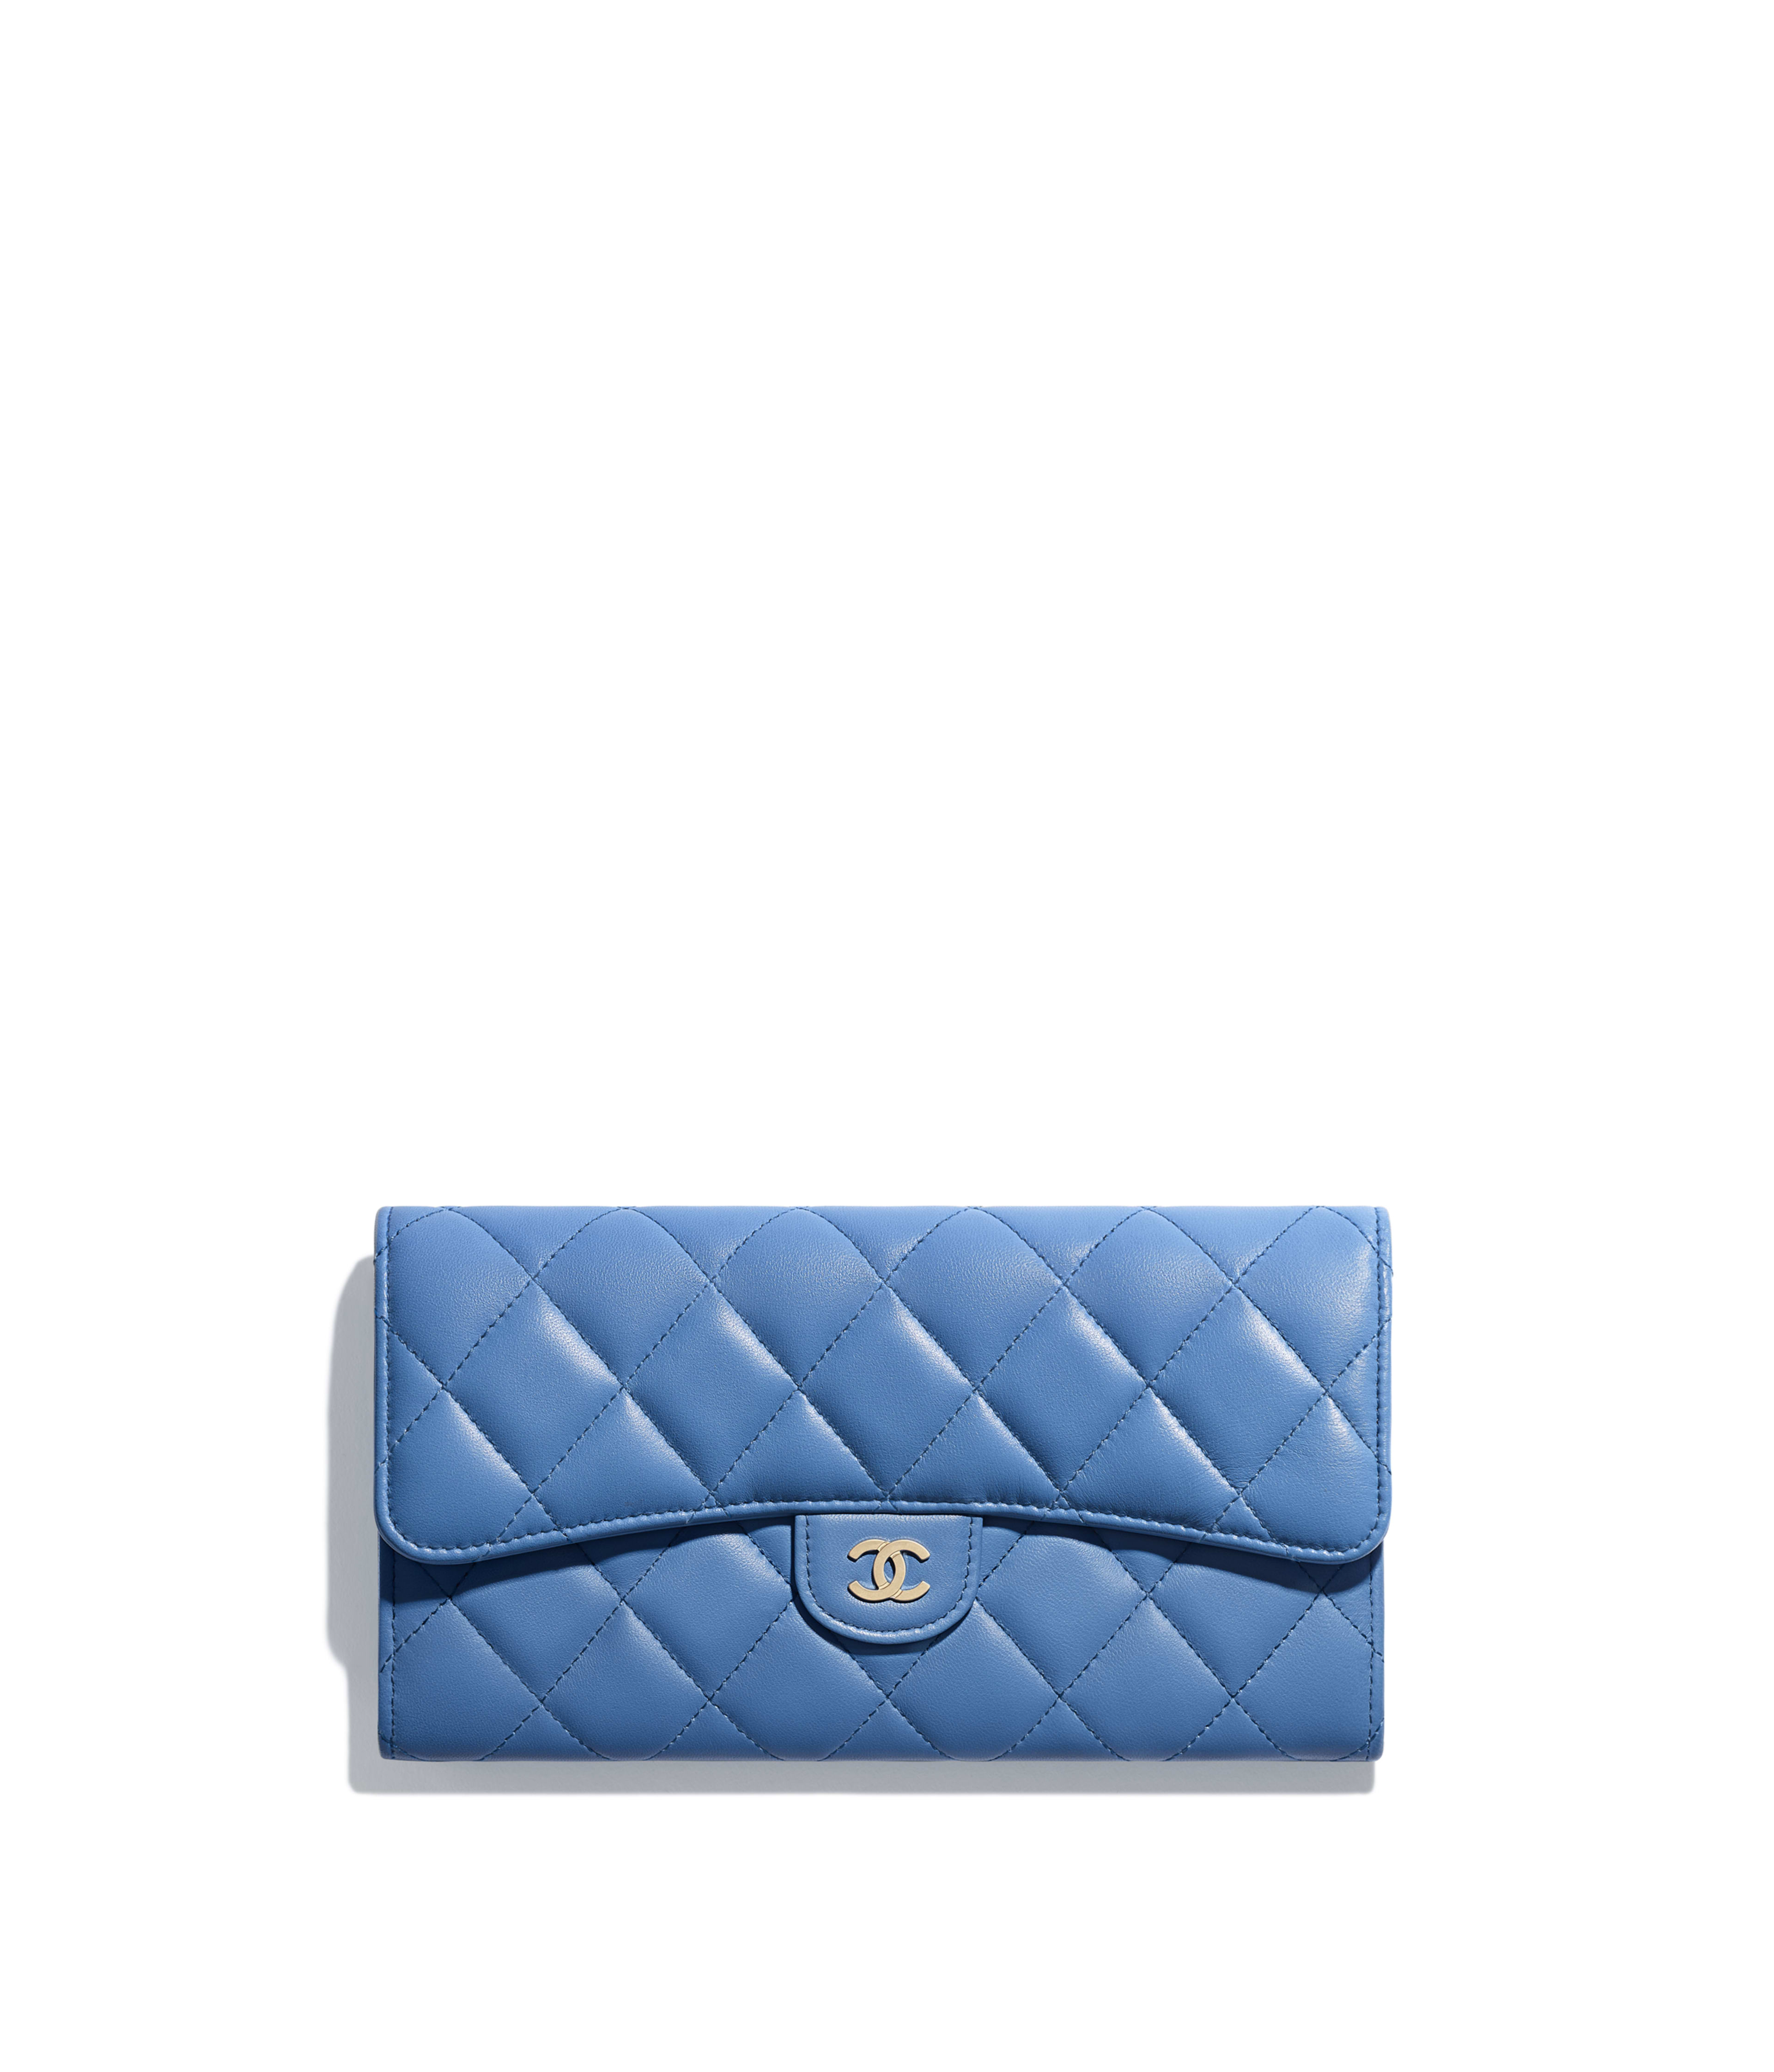 Small leather goods - Fashion  19ae11a2be752